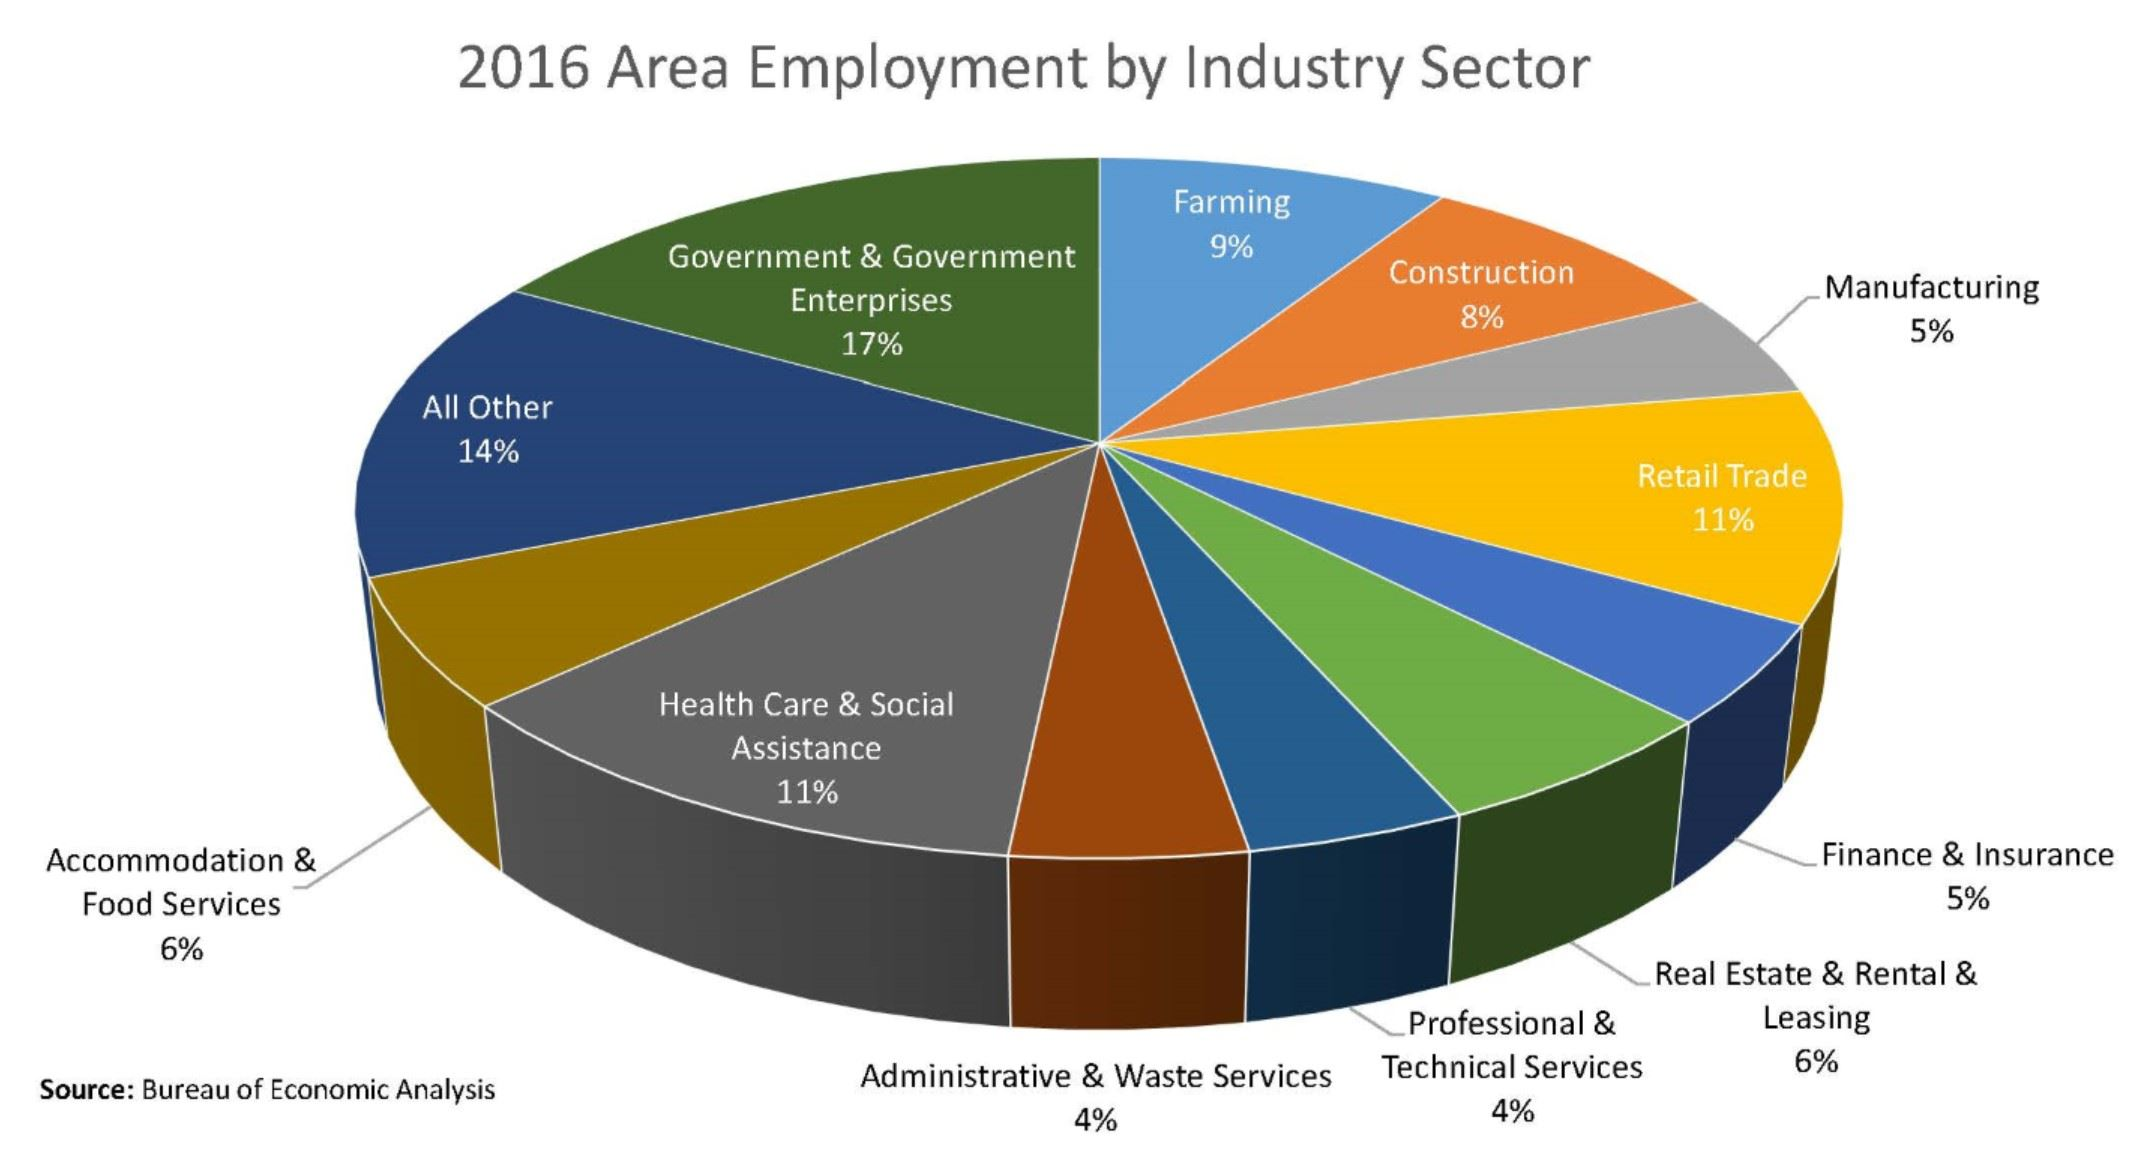 Miami County Employment by Industry from peer data